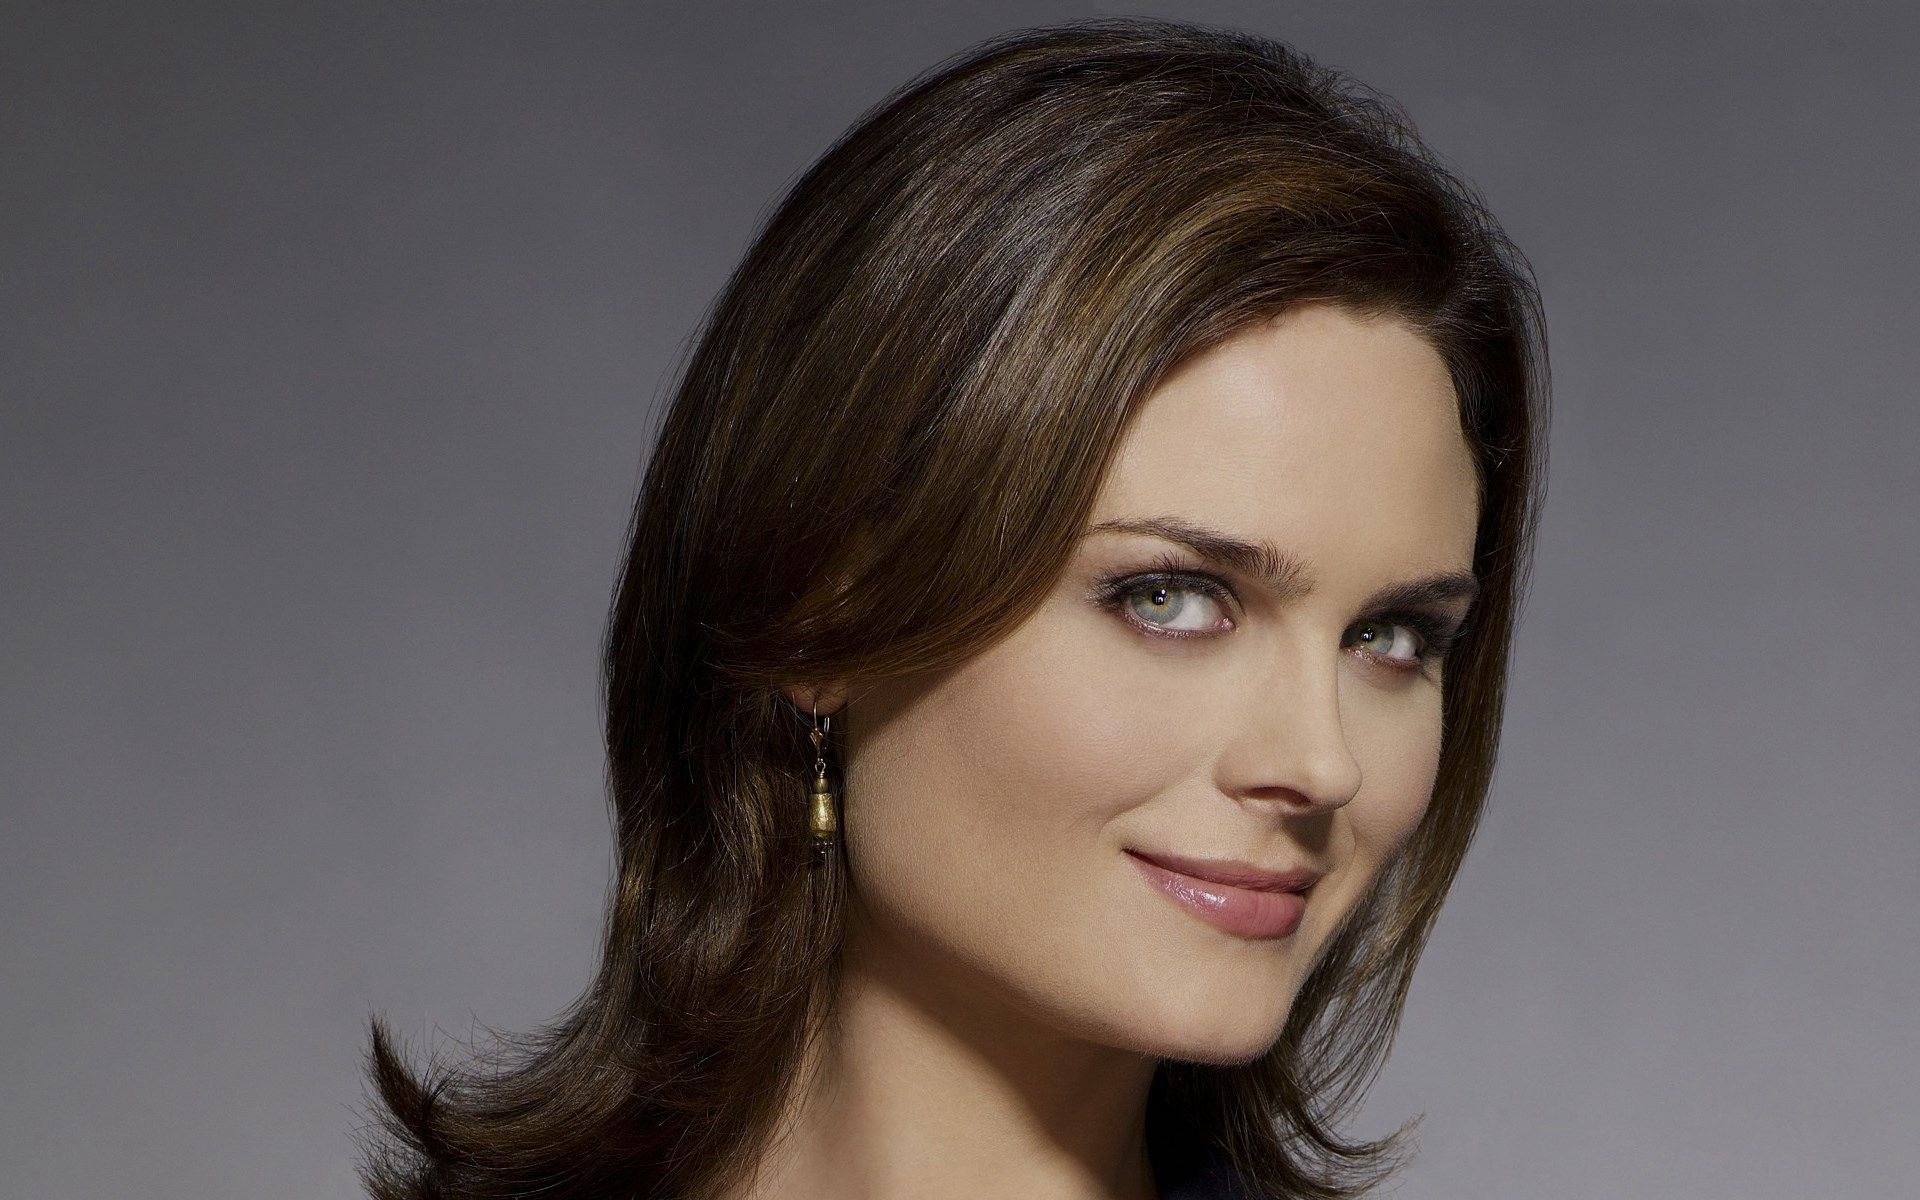 emily deschanel wallpaper hd Emily deschanel, Celebrity